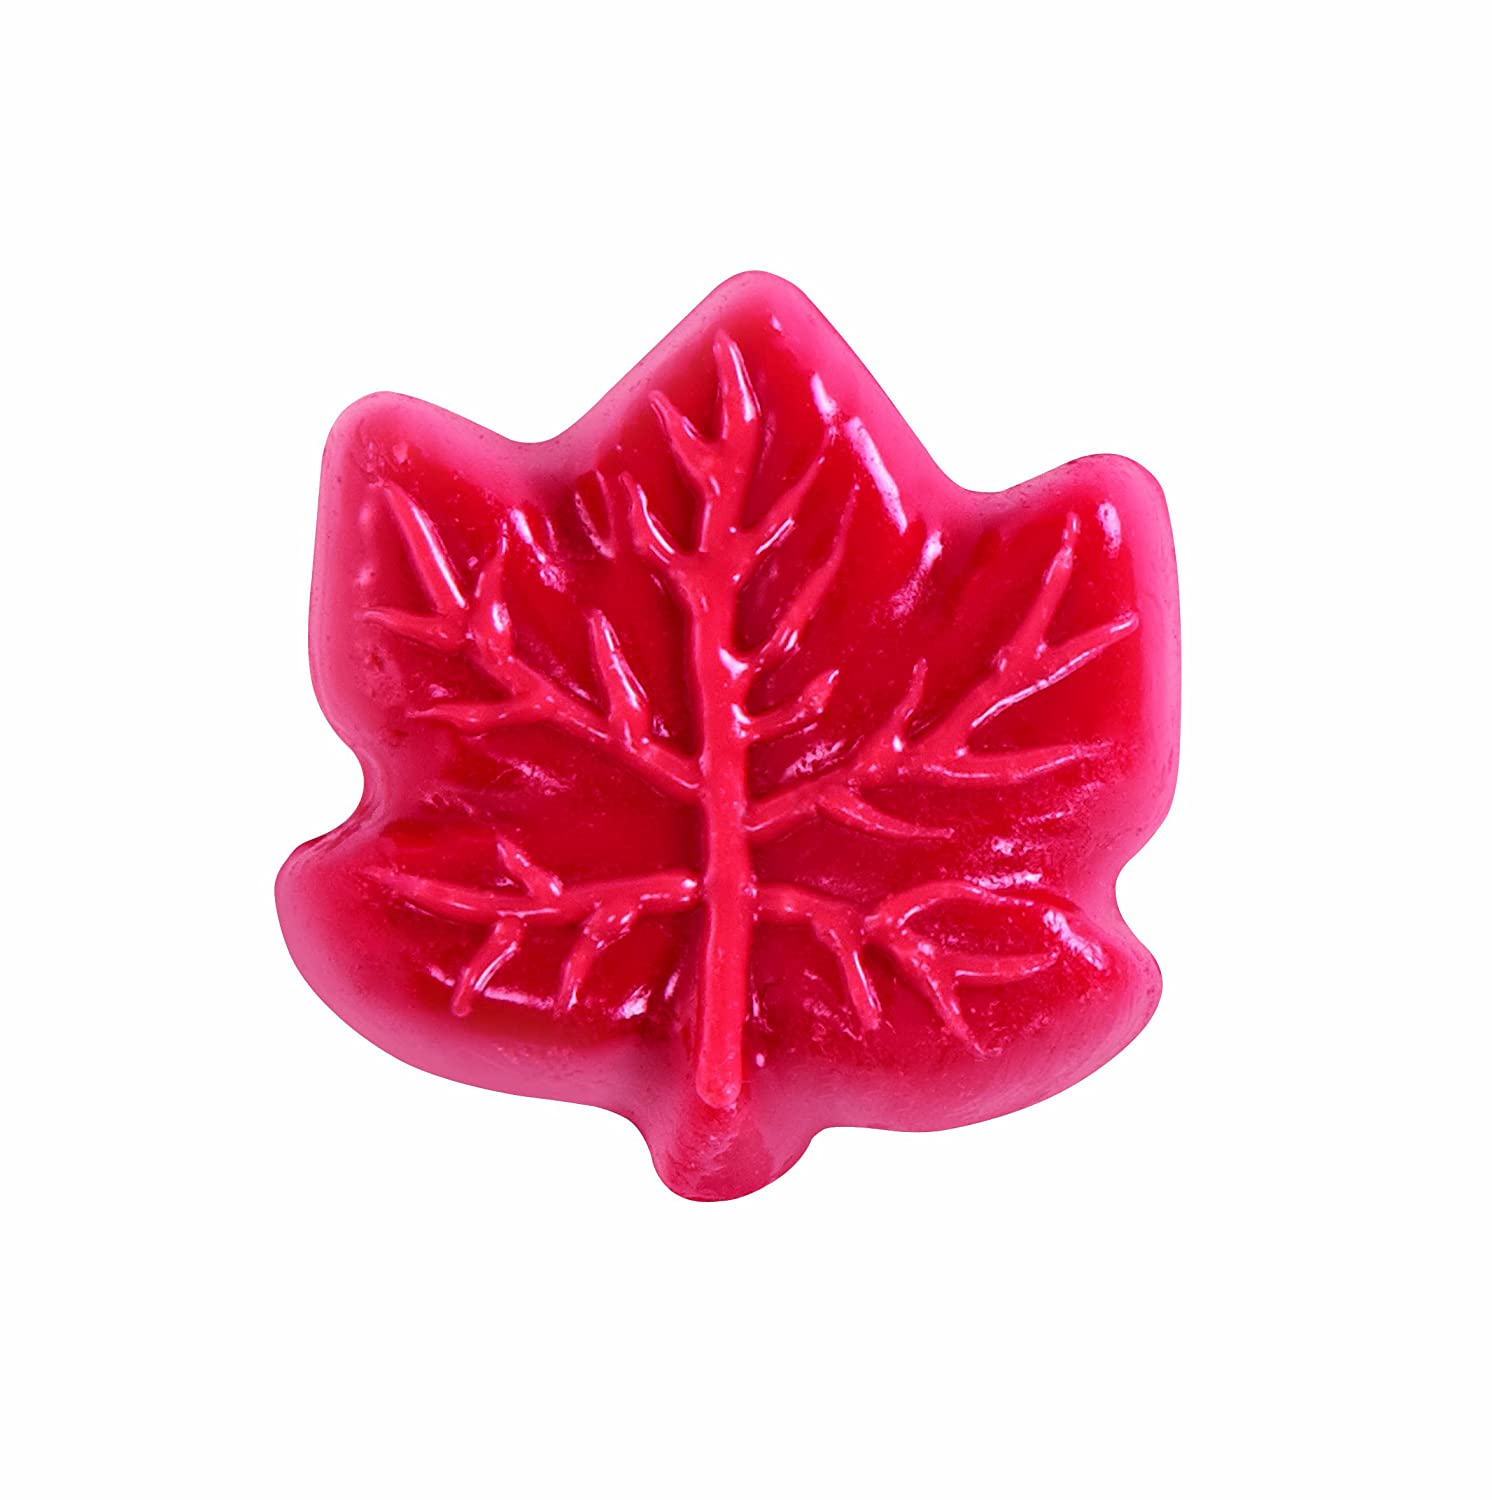 Maple Leaf Leaves Chocolate Candy Mold from Wilton 1434 NEW